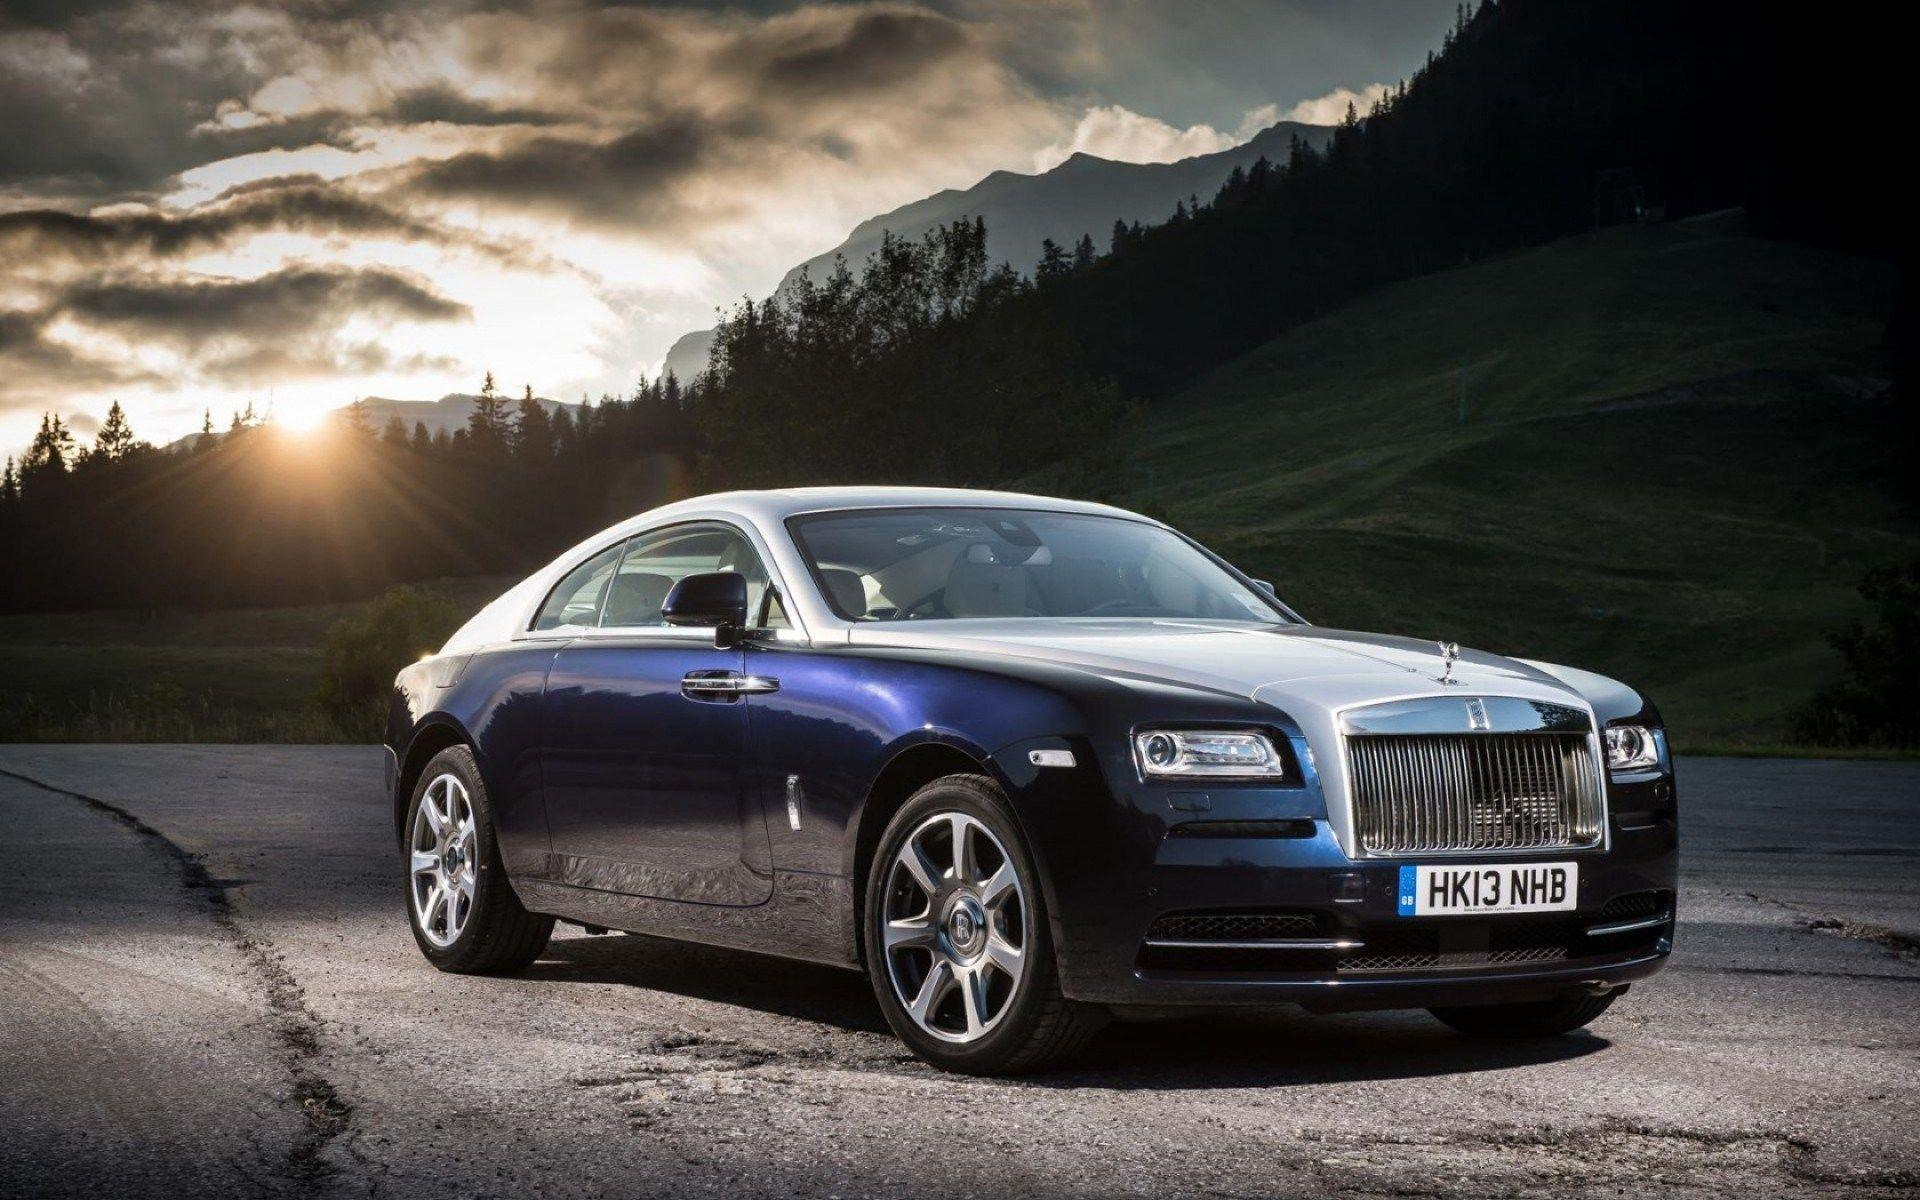 Wallpaper Rolls Royce Sedan Rolls Royce Wraith Wheel Car Vehicle ...